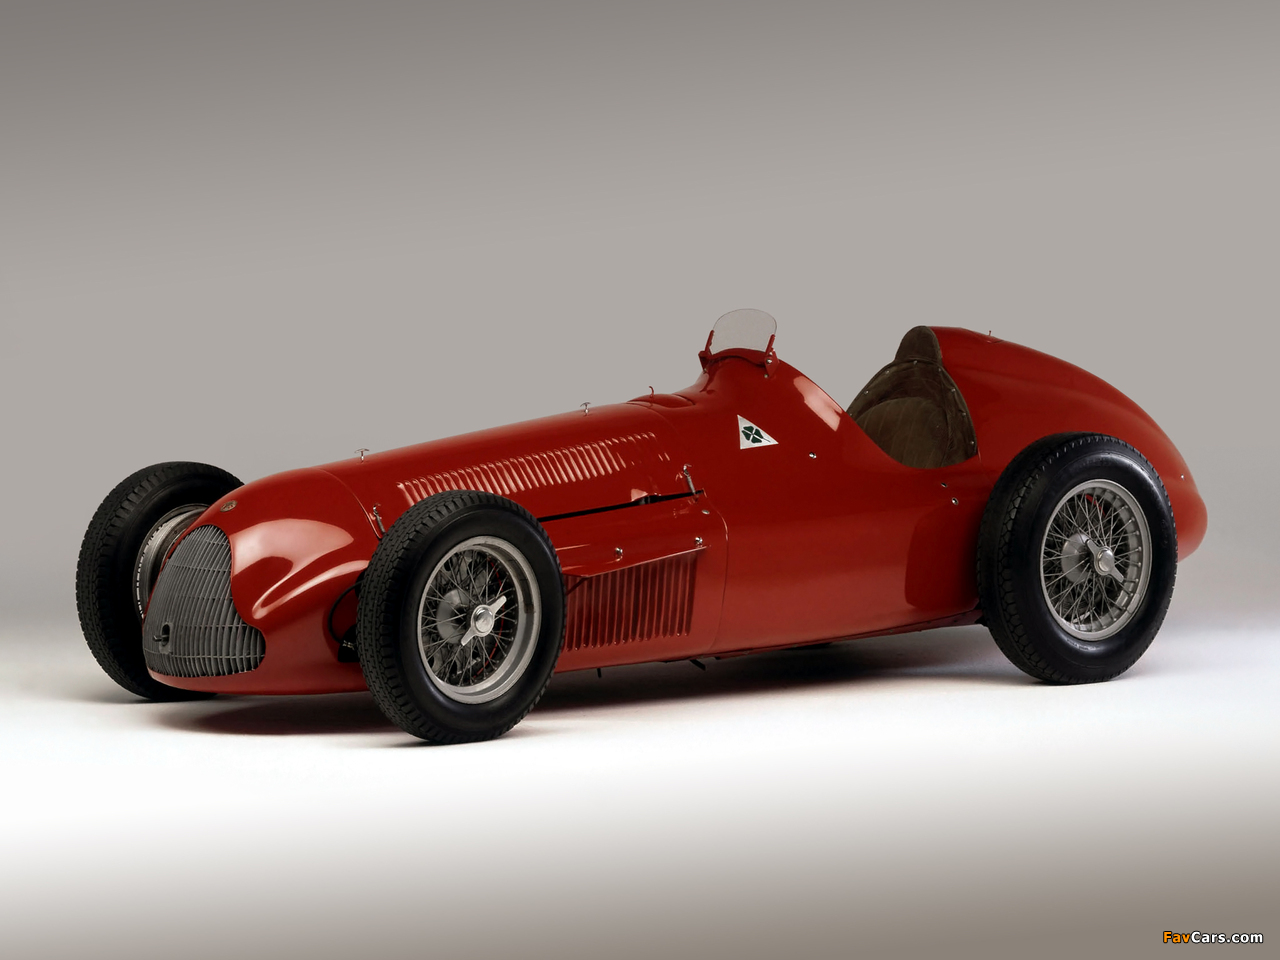 2019 Alfa Romeo Tipo 159 Alfetta photo - 1